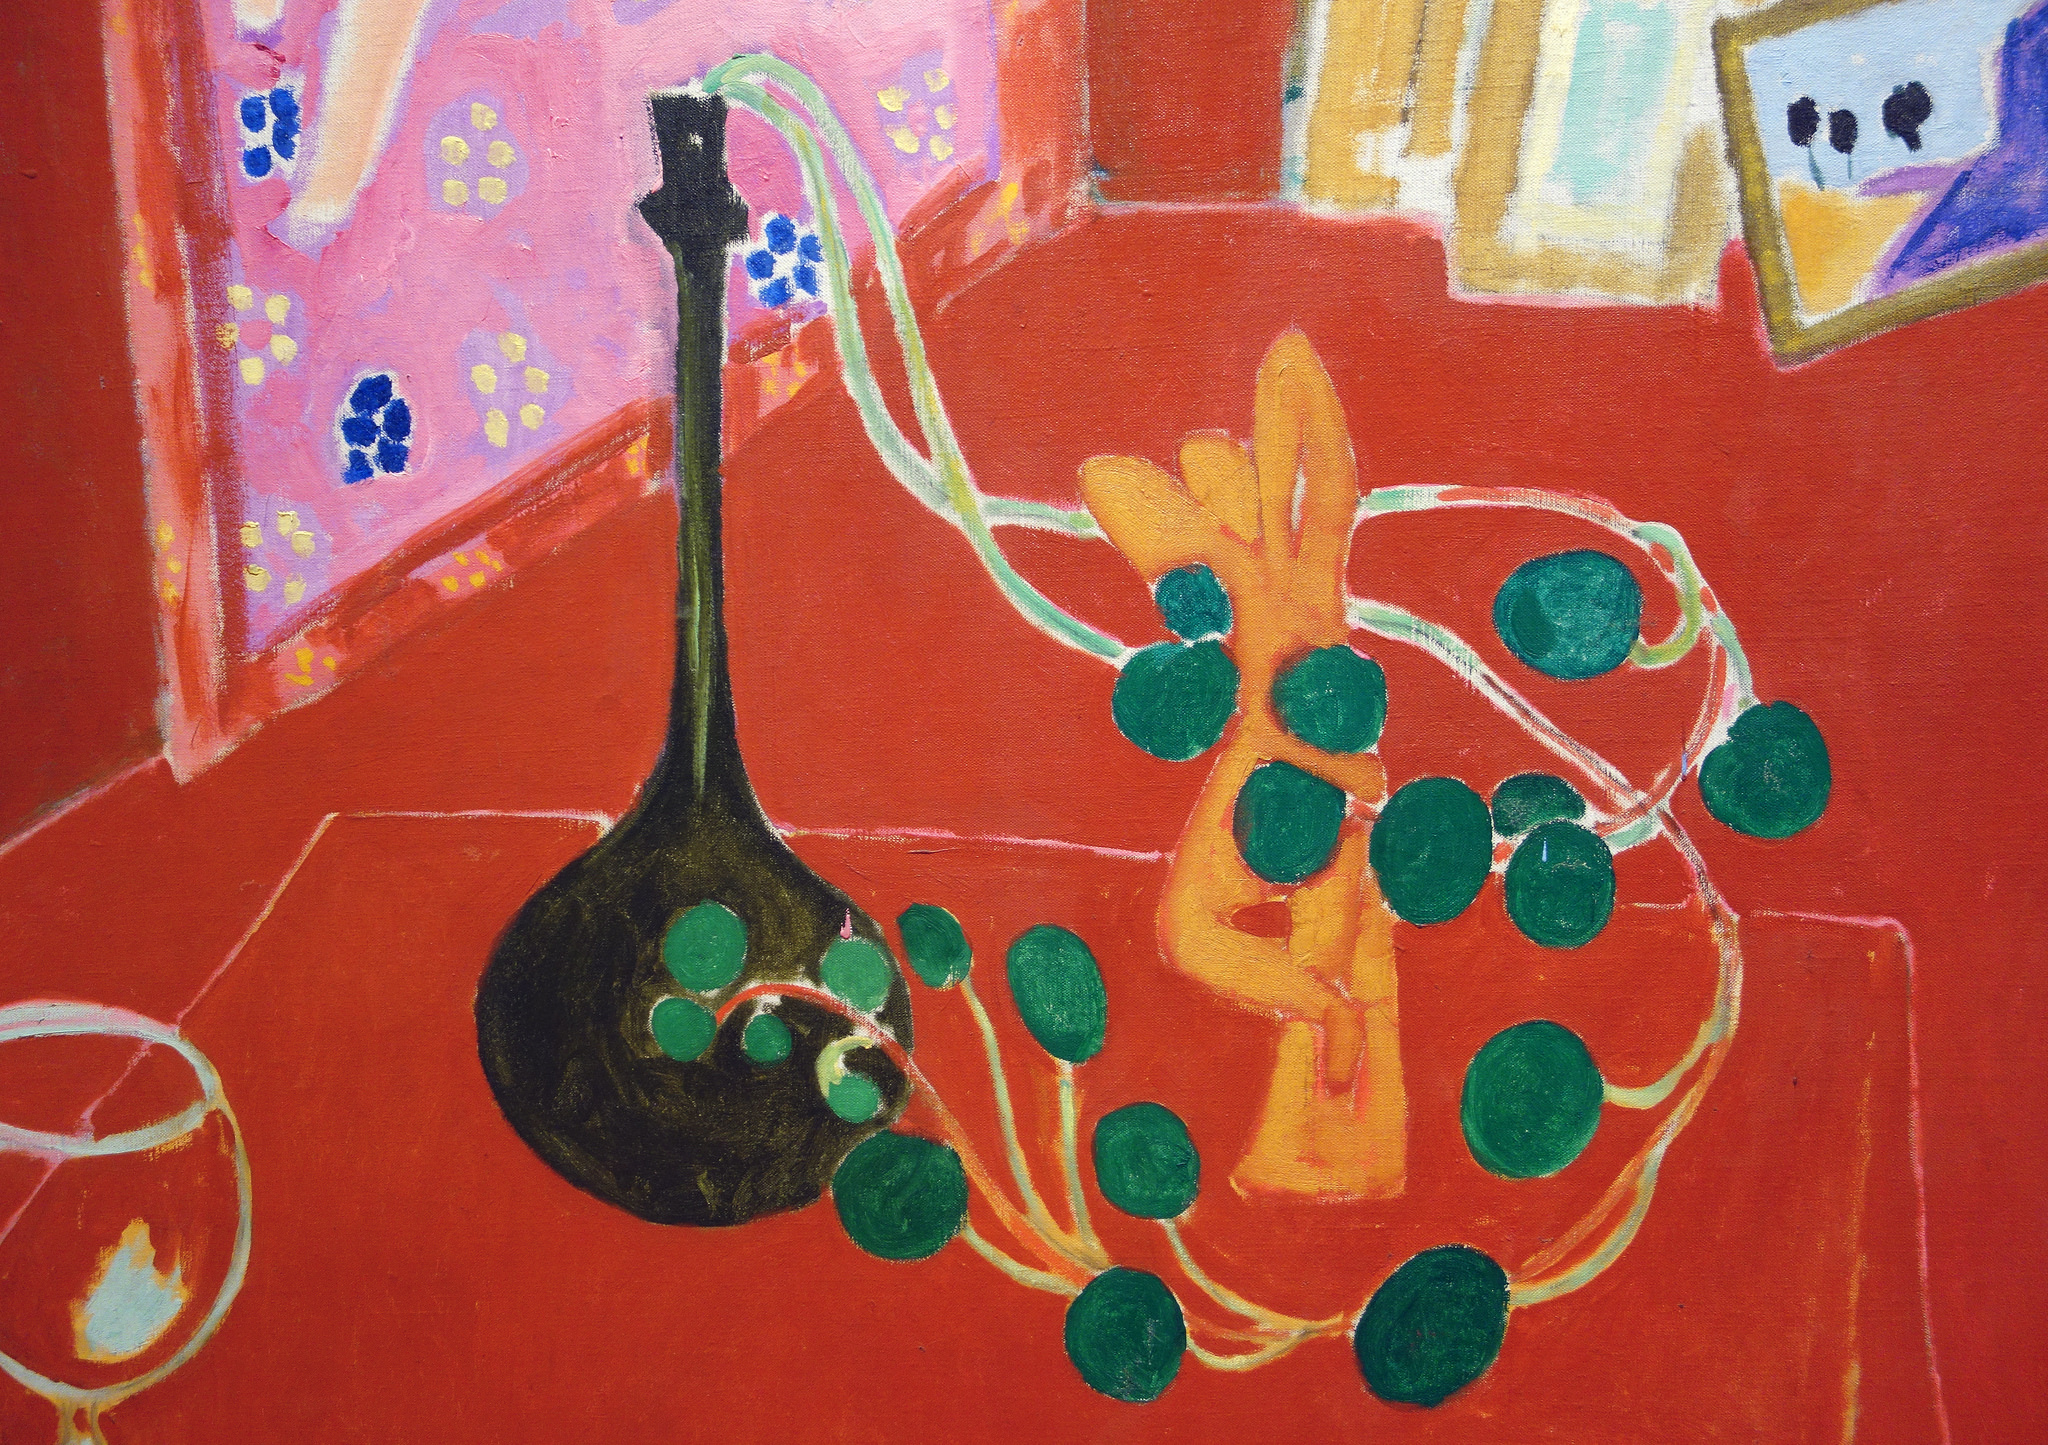 Detail, Henri Matisse, The Red Studio, 1911, oil on canvas, 181 x 219.1 cm (The Museum of Modern Art)